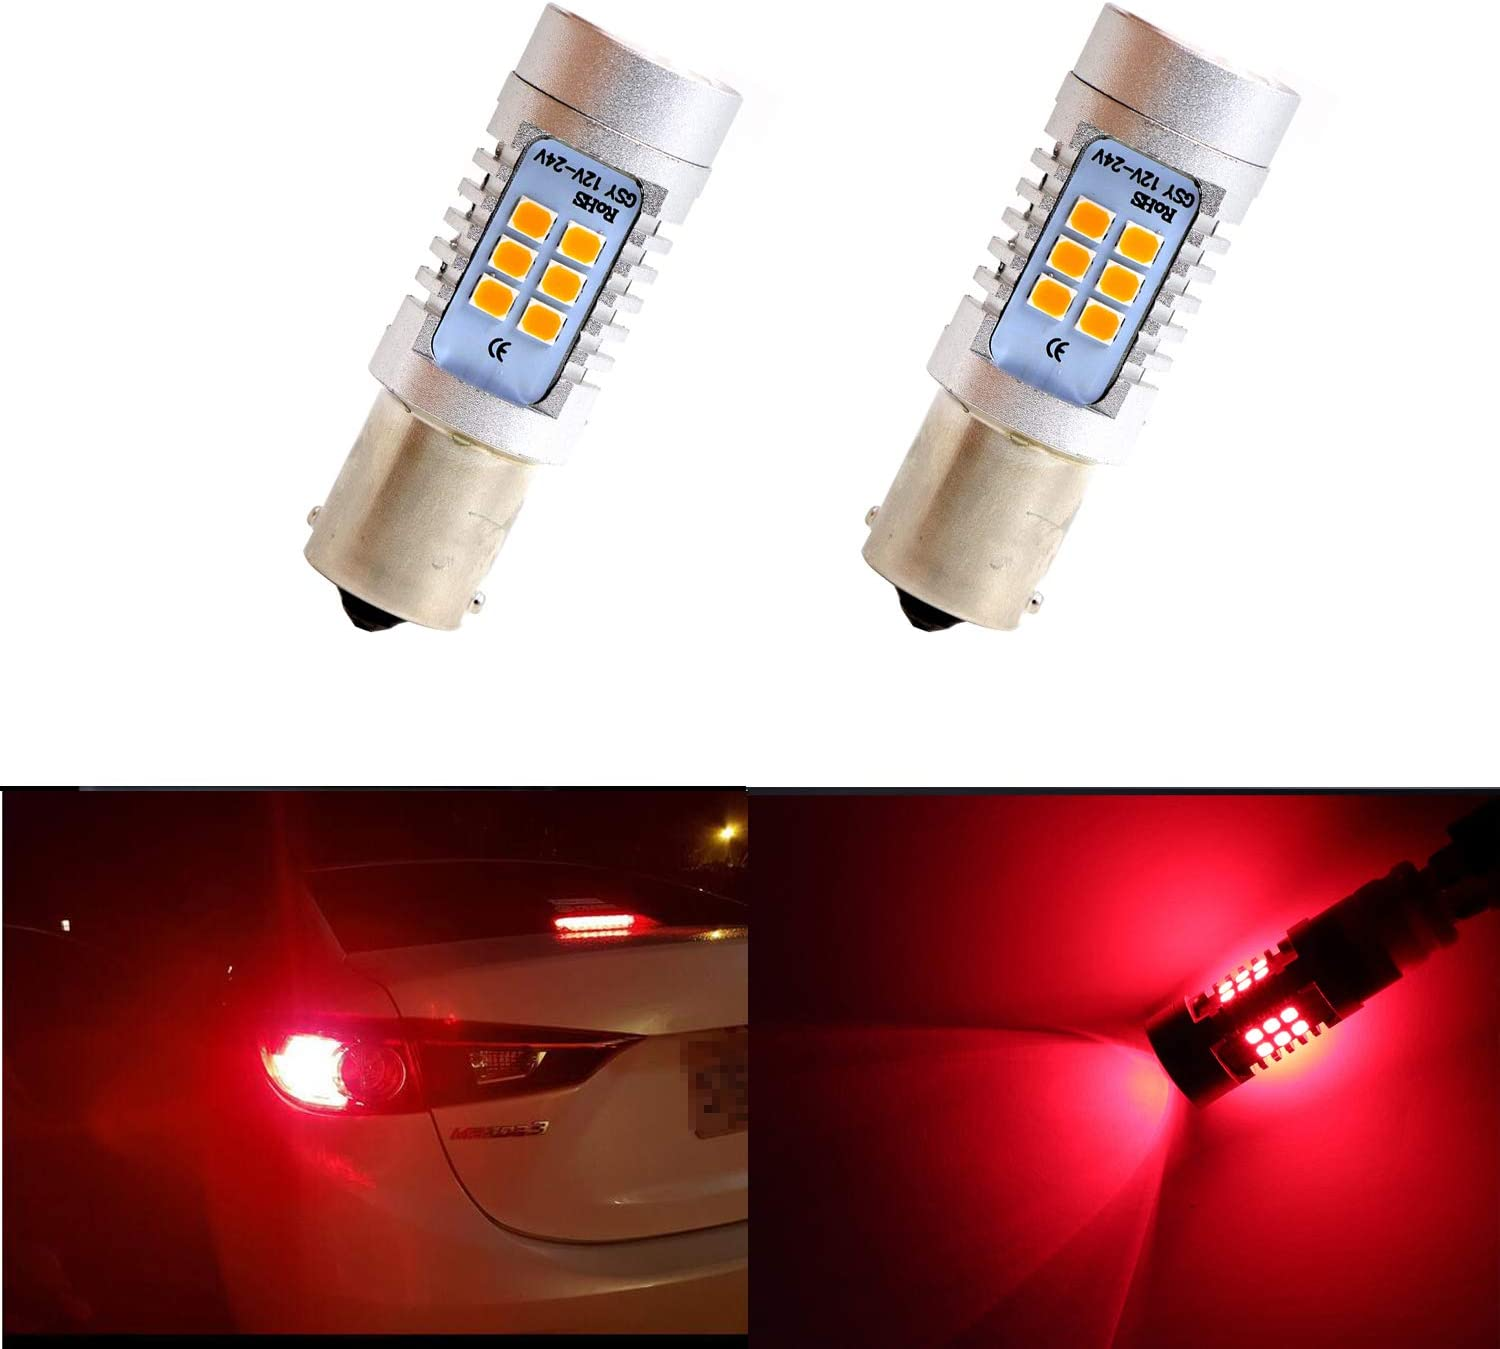 Extremely Bright 1157 7528 LED BAY15 Bulb Brake Light Bulbs 33 SMD Brilliant Red Tail Lights Stop Lamp with Projector Lens Replacement 2pcs